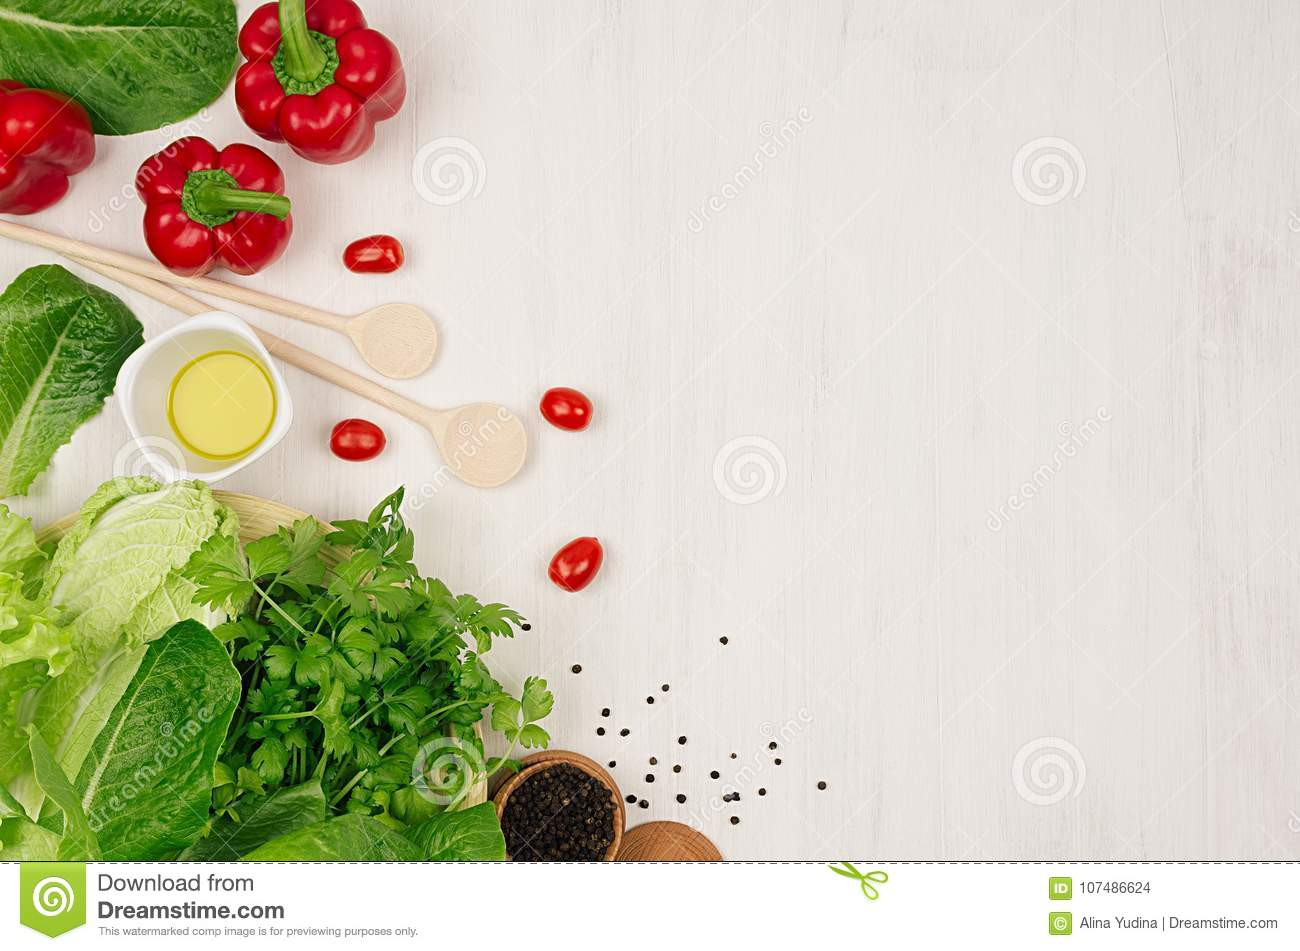 Cooking fresh spring salad of green and red vegetables, spices on white wooden background, border, top view.